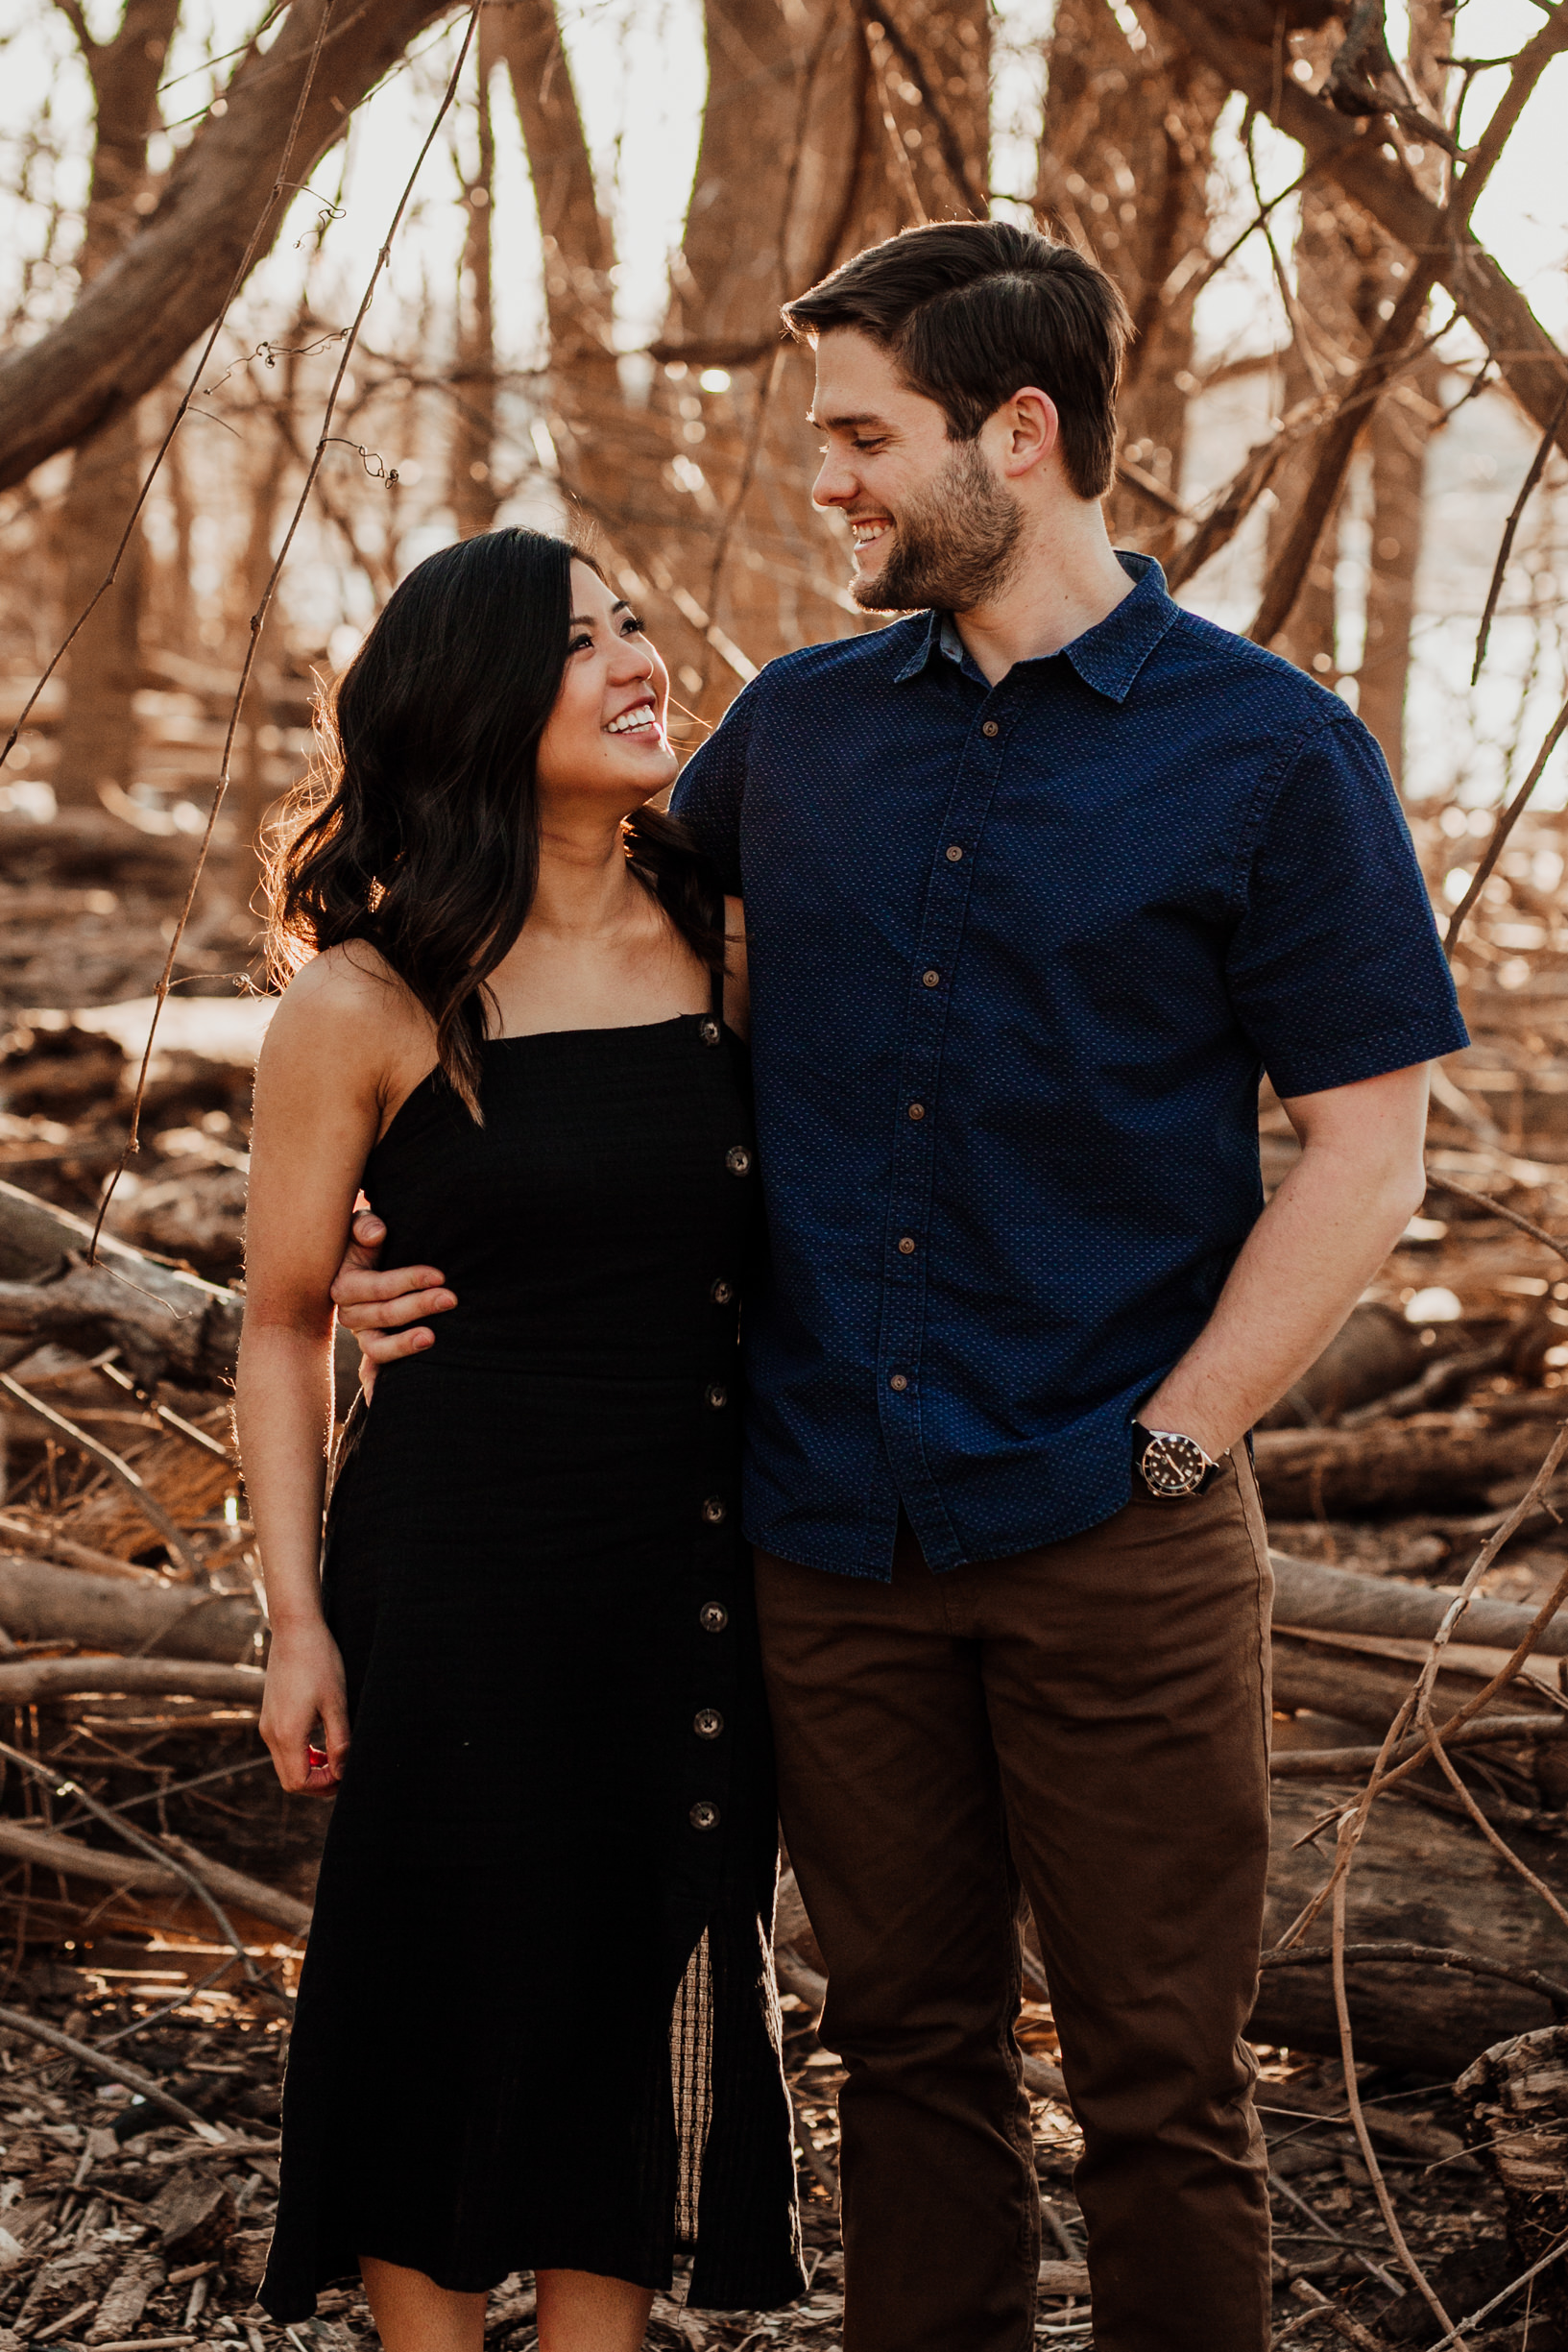 louisville-engagement-photographer-crystal-ludwick-photo-tammy-and-caleb-engagement-photography (16 of 32).jpg